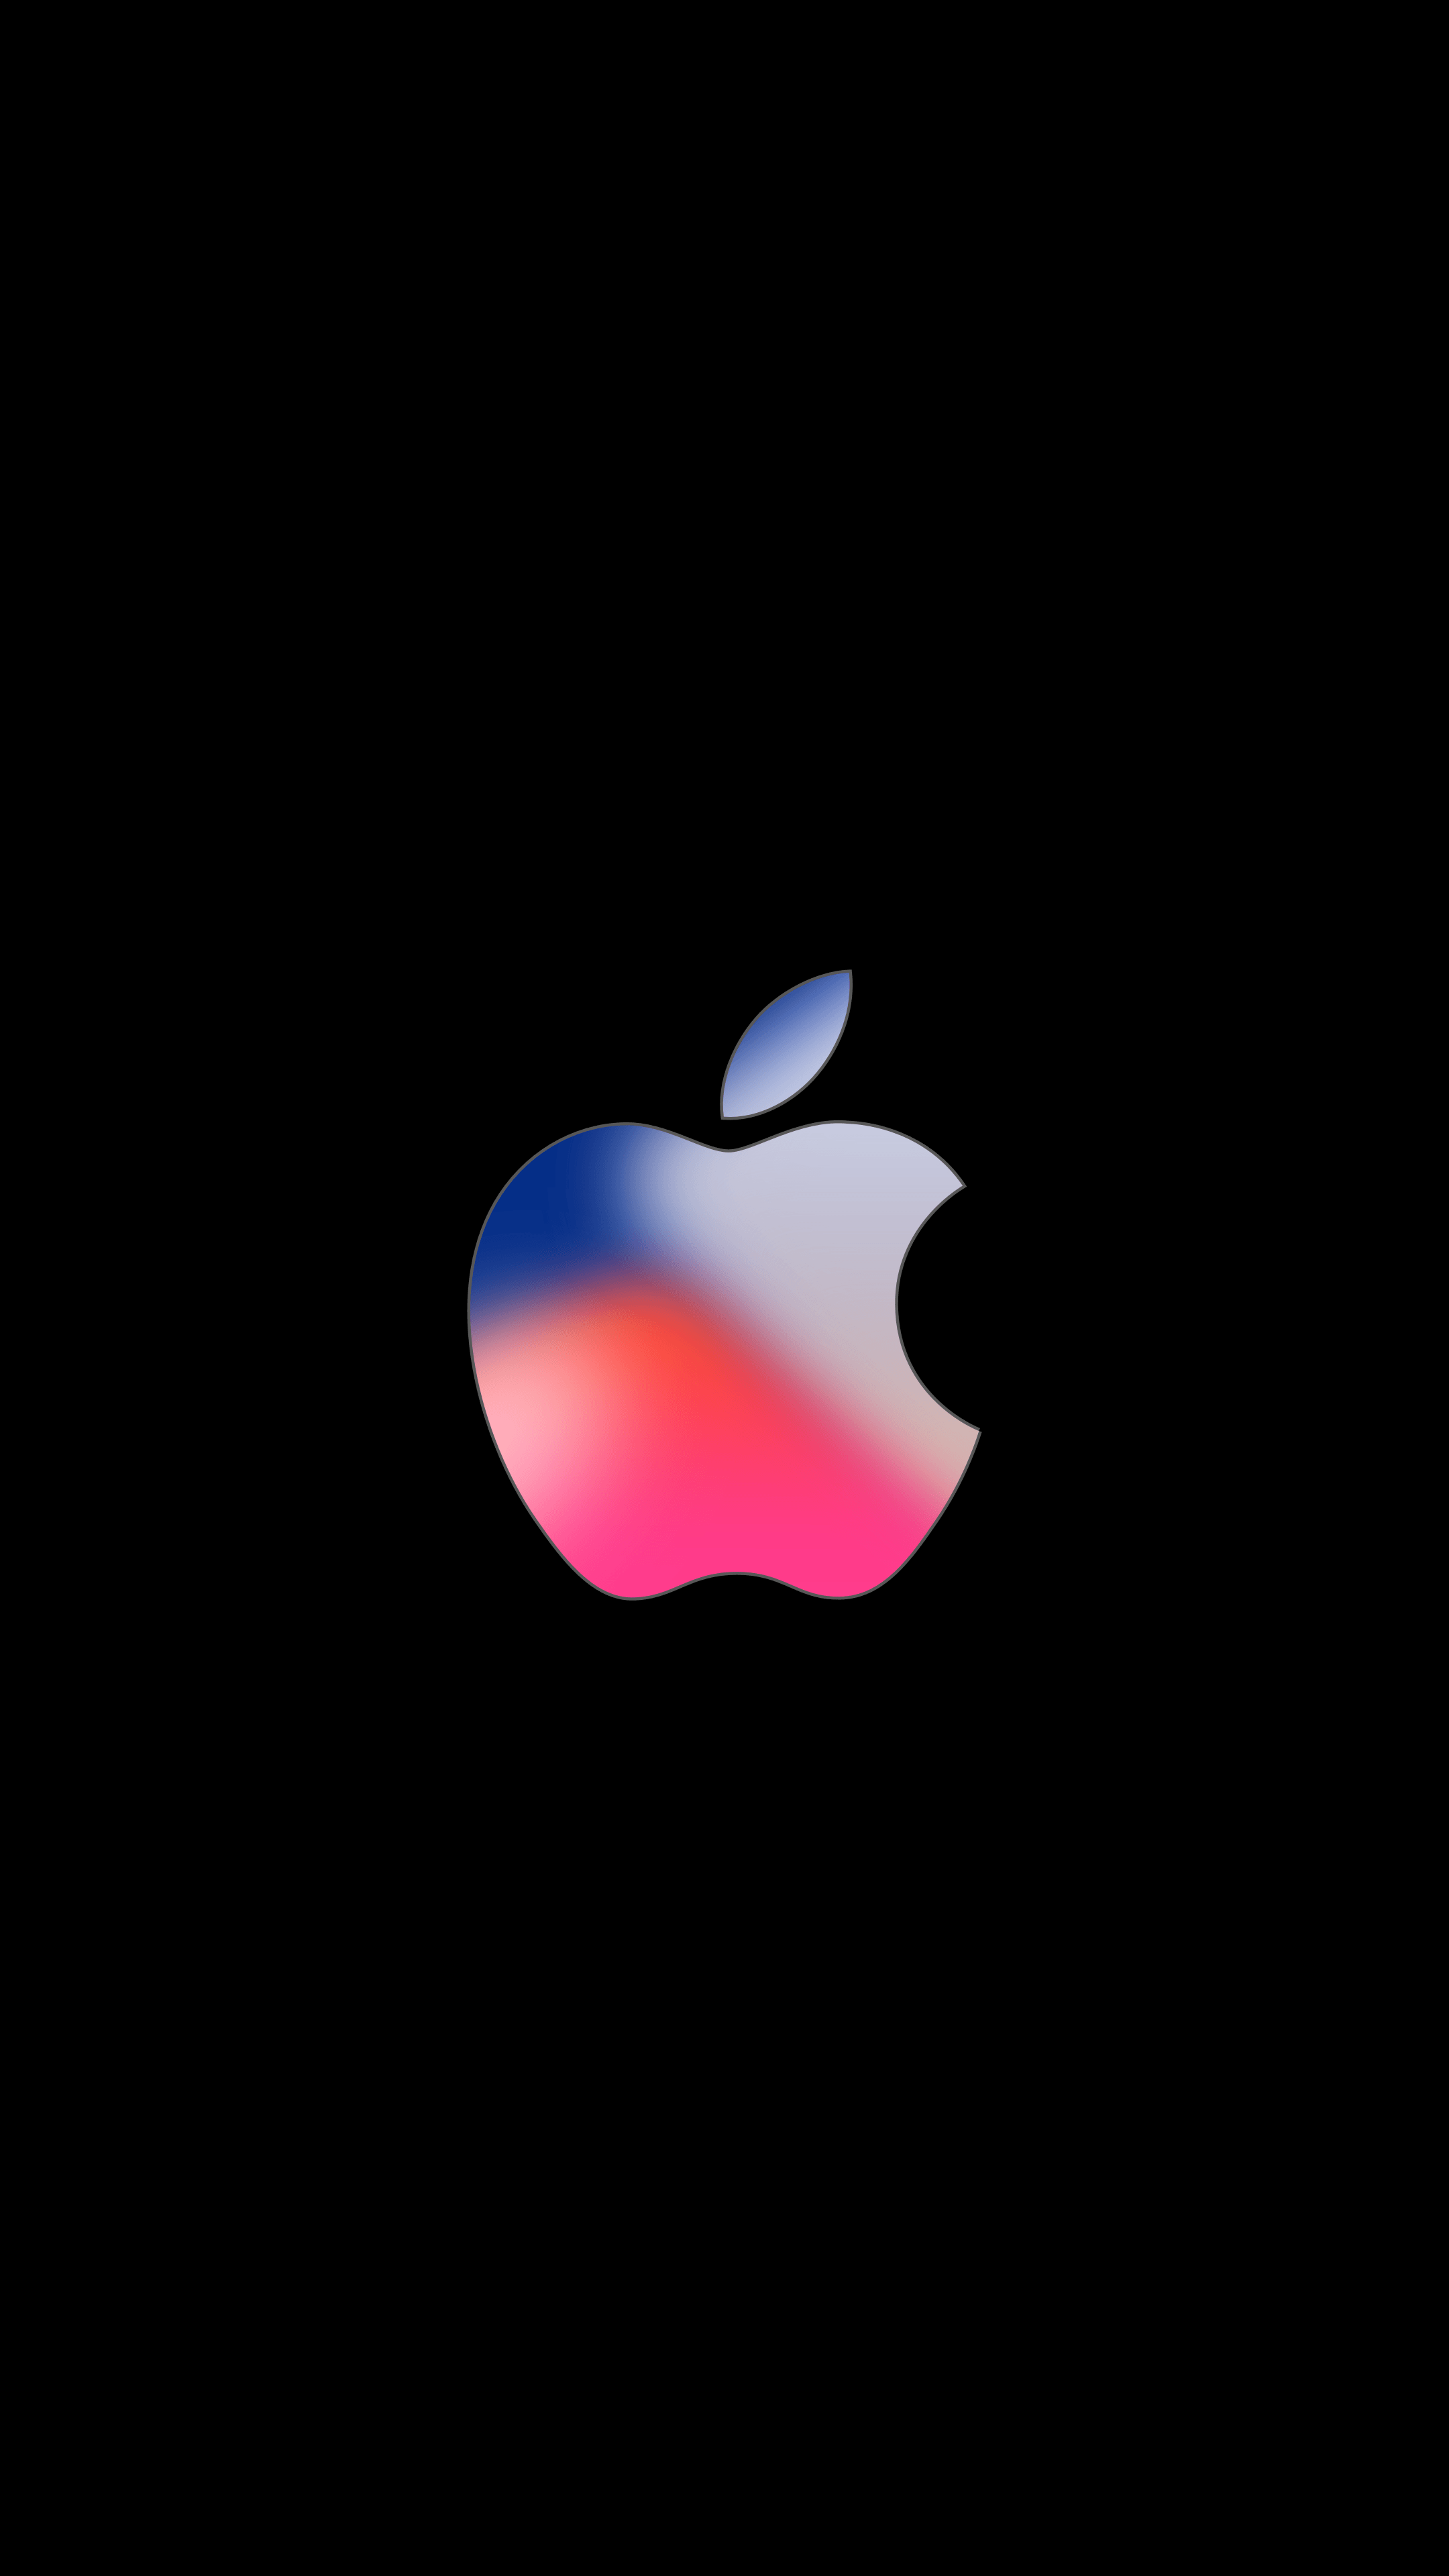 List of Most Downloaded Full Hd Black Wallpaper Iphone for iPhone XS Max 2020